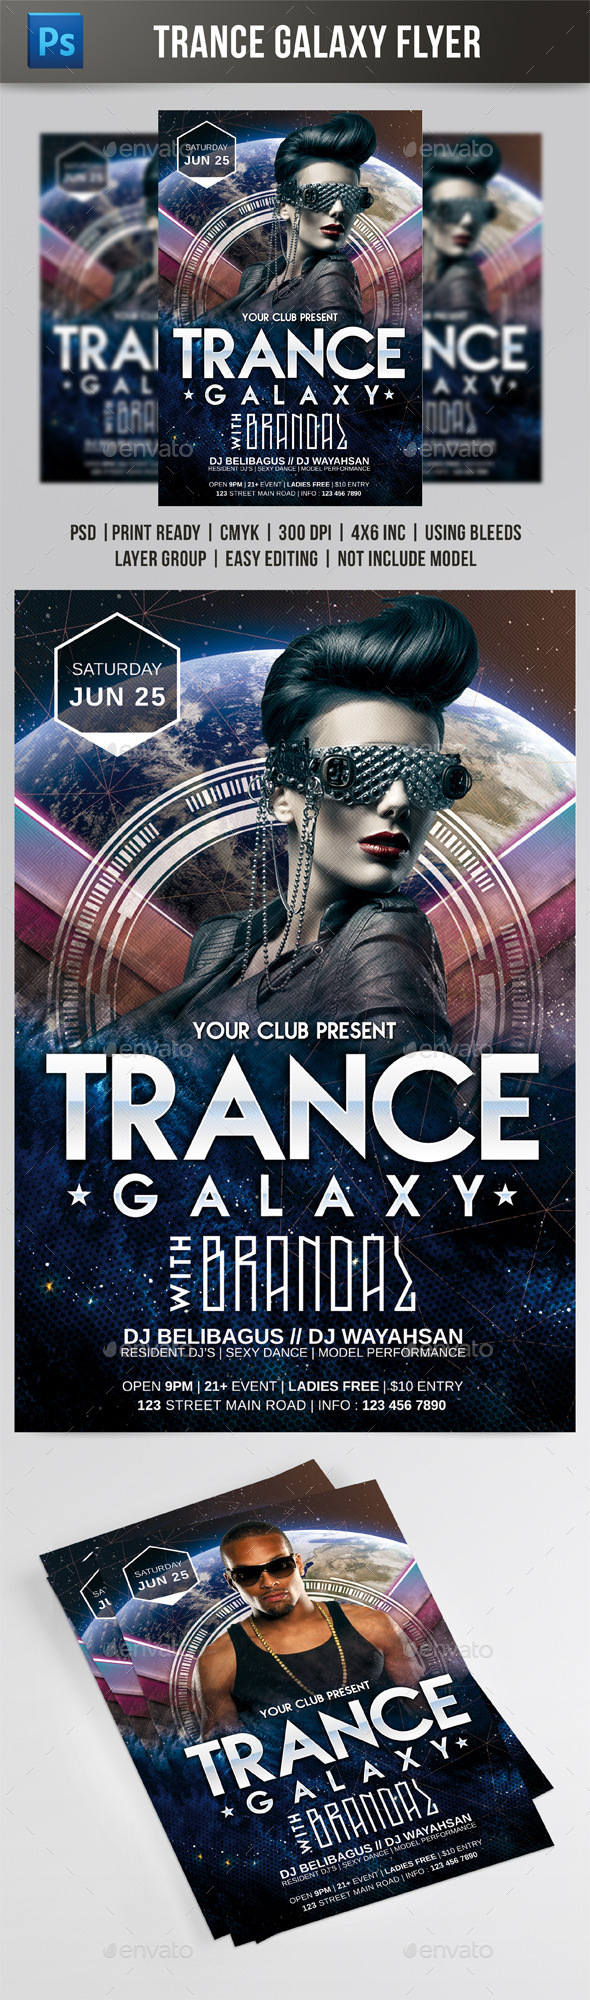 Trance Galaxy Flyer - Events Flyers